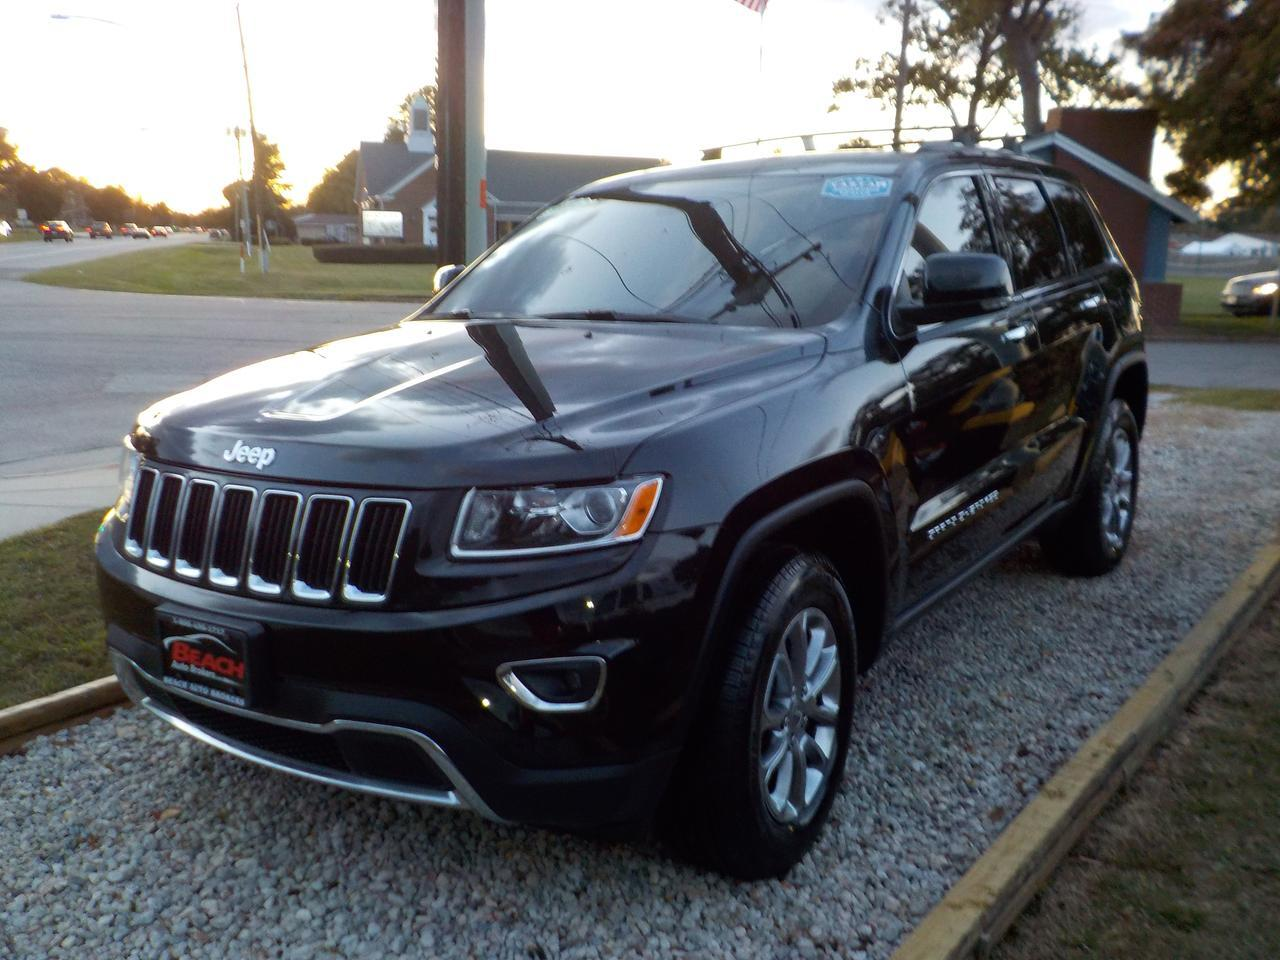 2014 JEEP GRAND CHEROKEE LIMITED 4X4, WARRANTY, LEATHER, SUNROOF, NAV, HEATED/COOLED SEATS, REMOTE START,1 OWNER! Norfolk VA